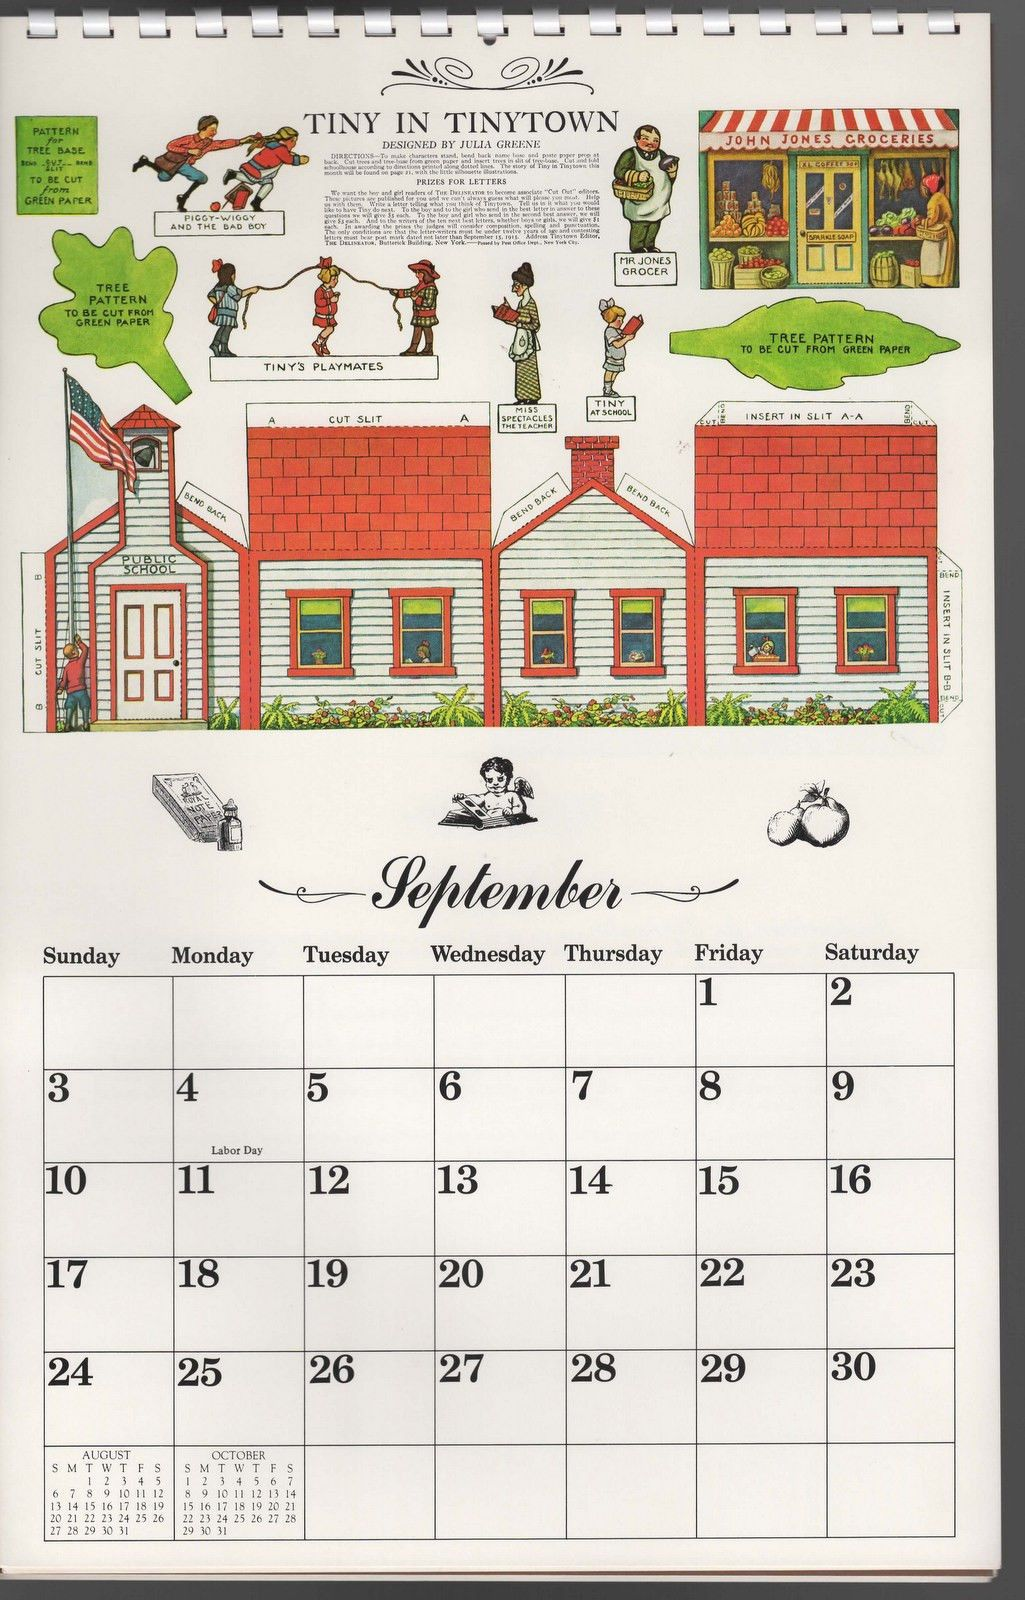 A Creative Calendar By Elspeth 1978 Paper Doll Post Cards Paper